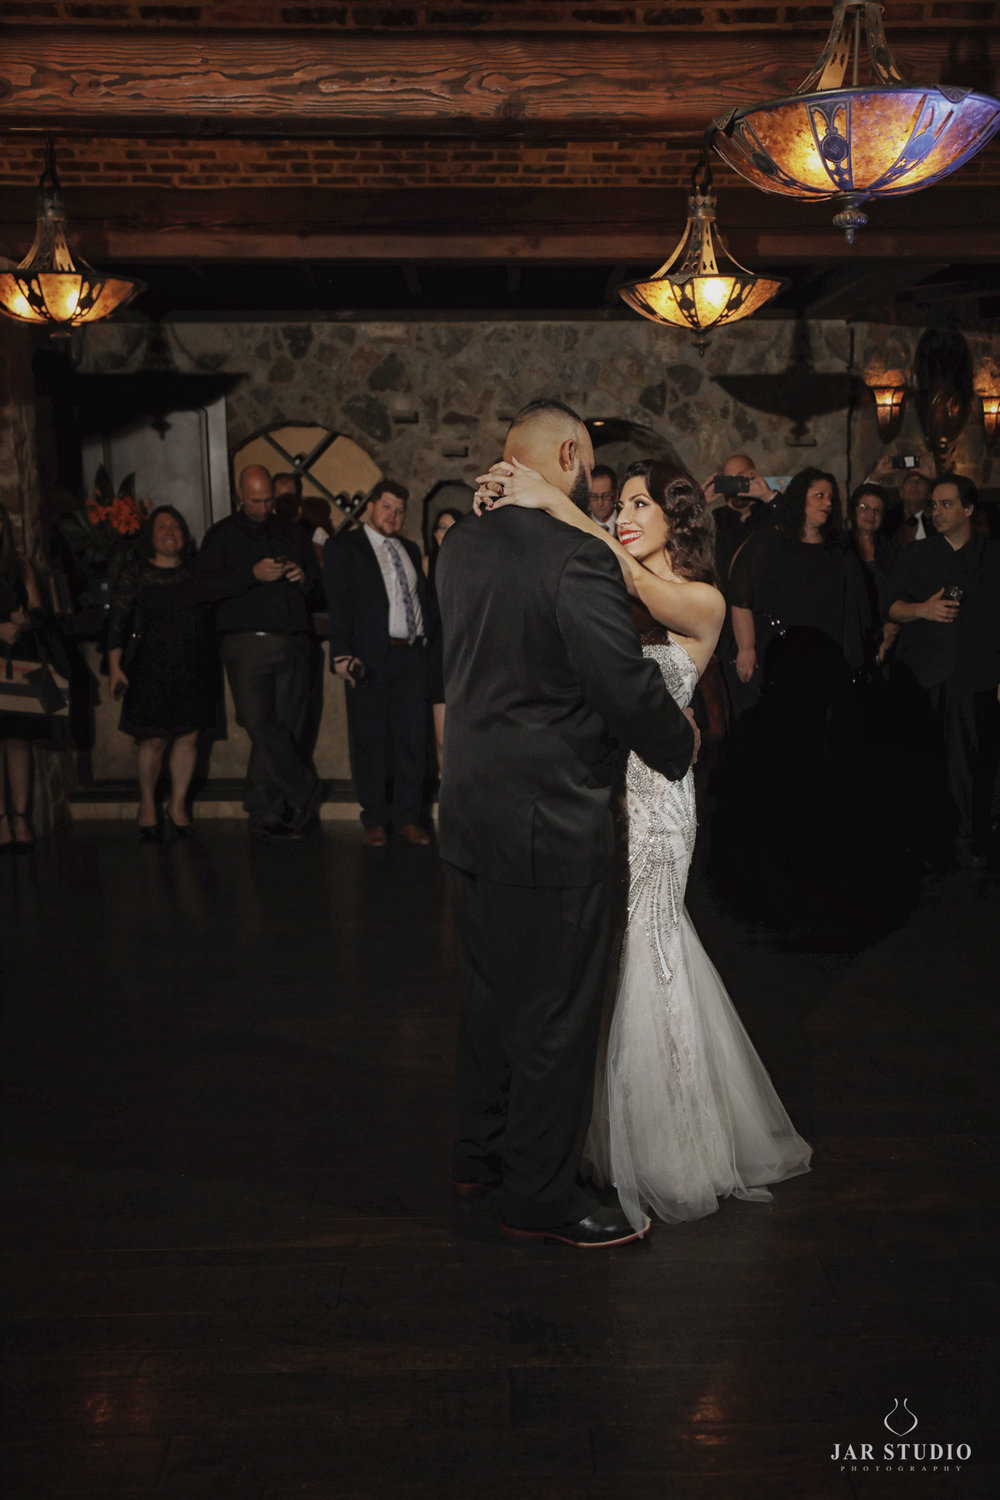 38-first-dance-romantic-bella-collina-photographer-jarstudio.jpg